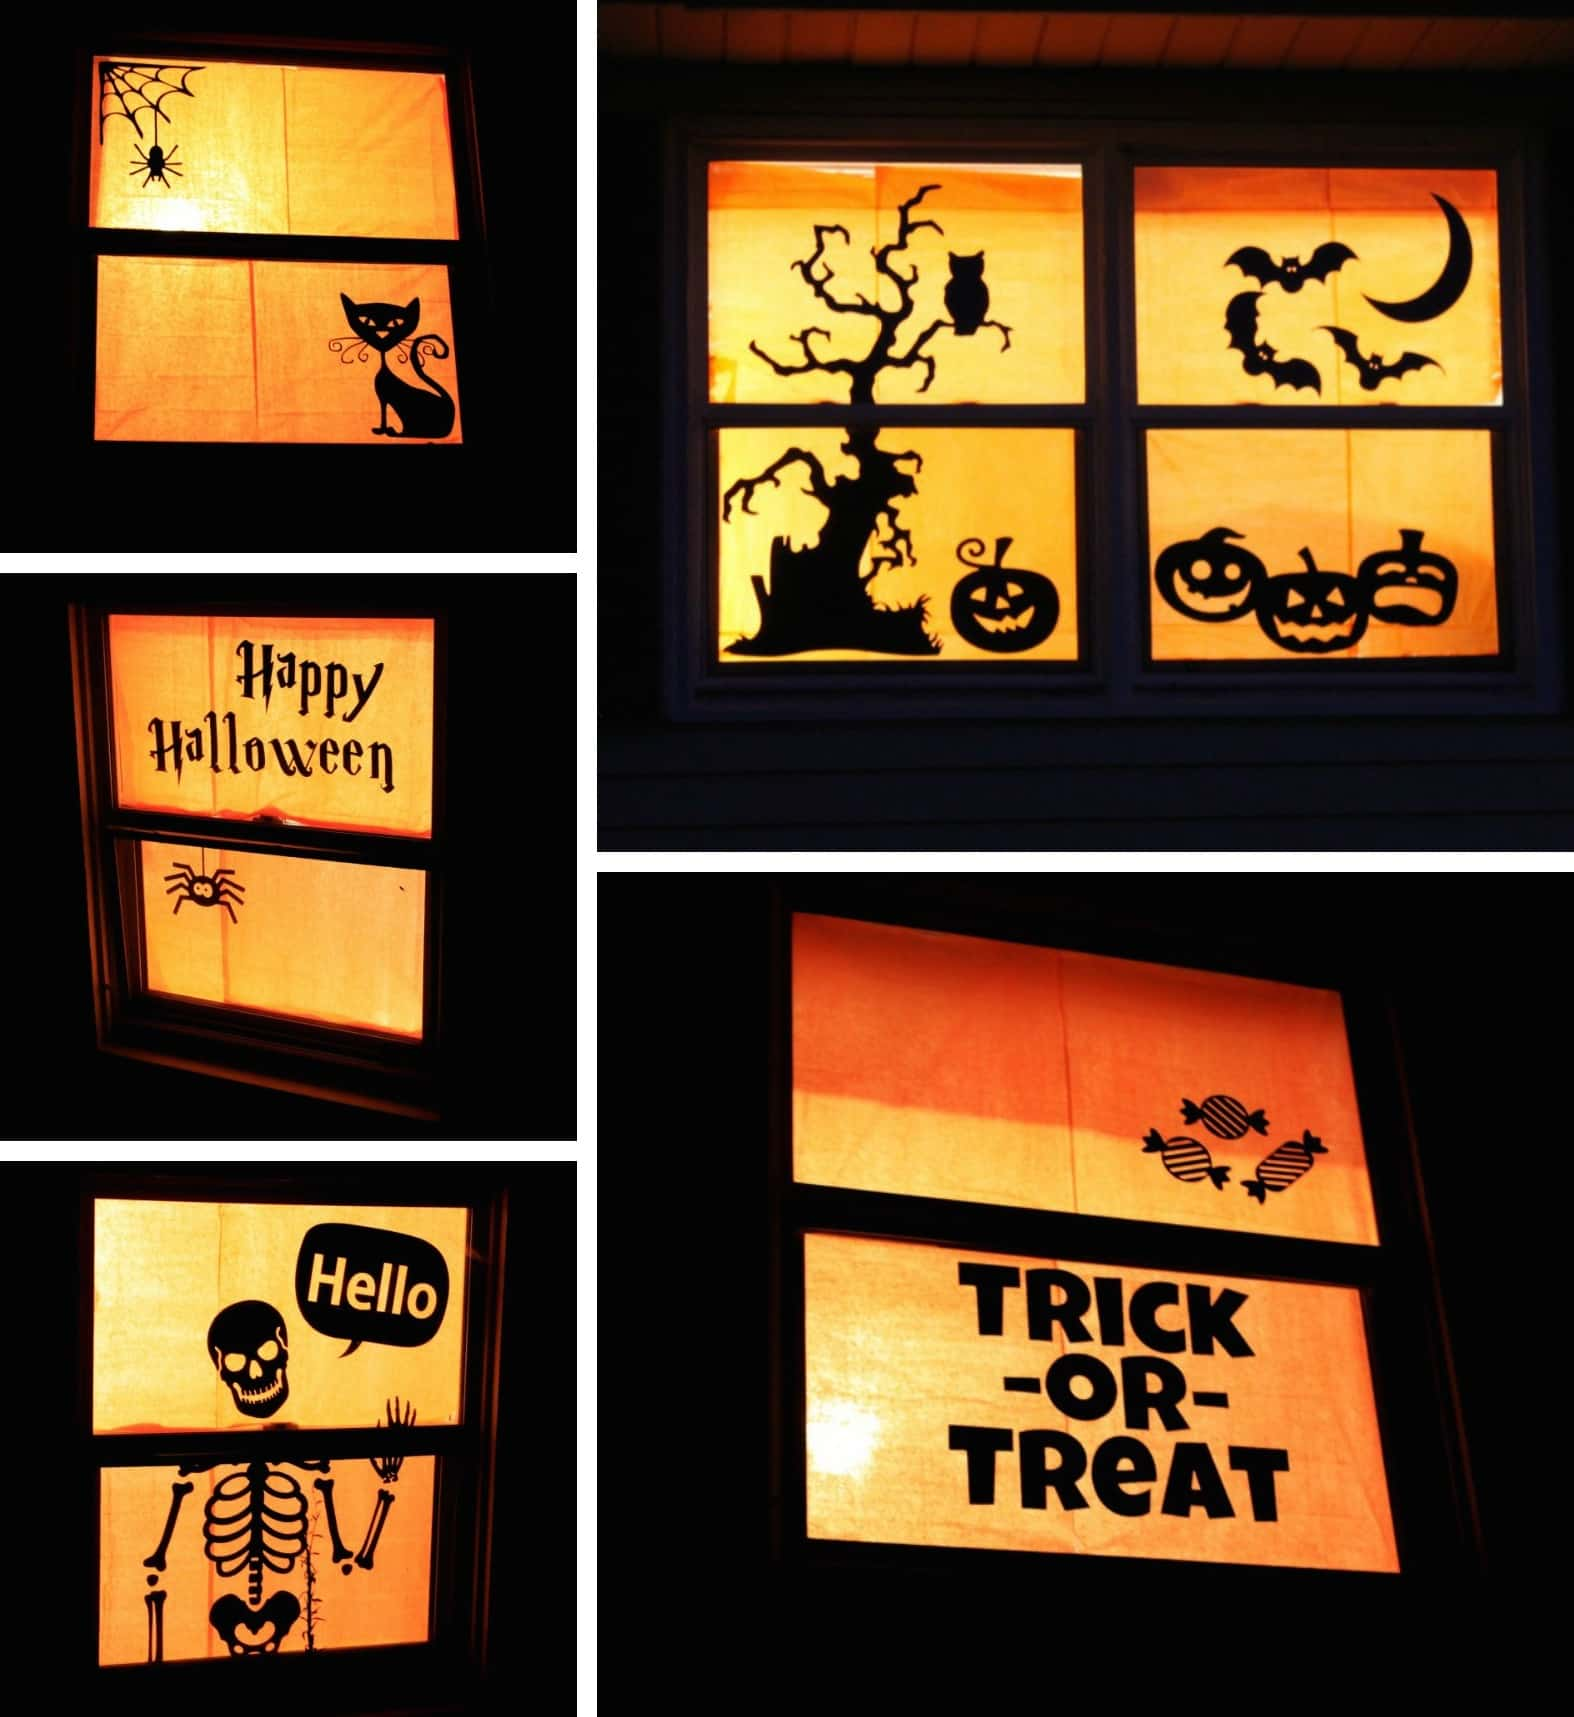 Halloween 3 idee low cost per arredare casa for Decorazioni per la casa online